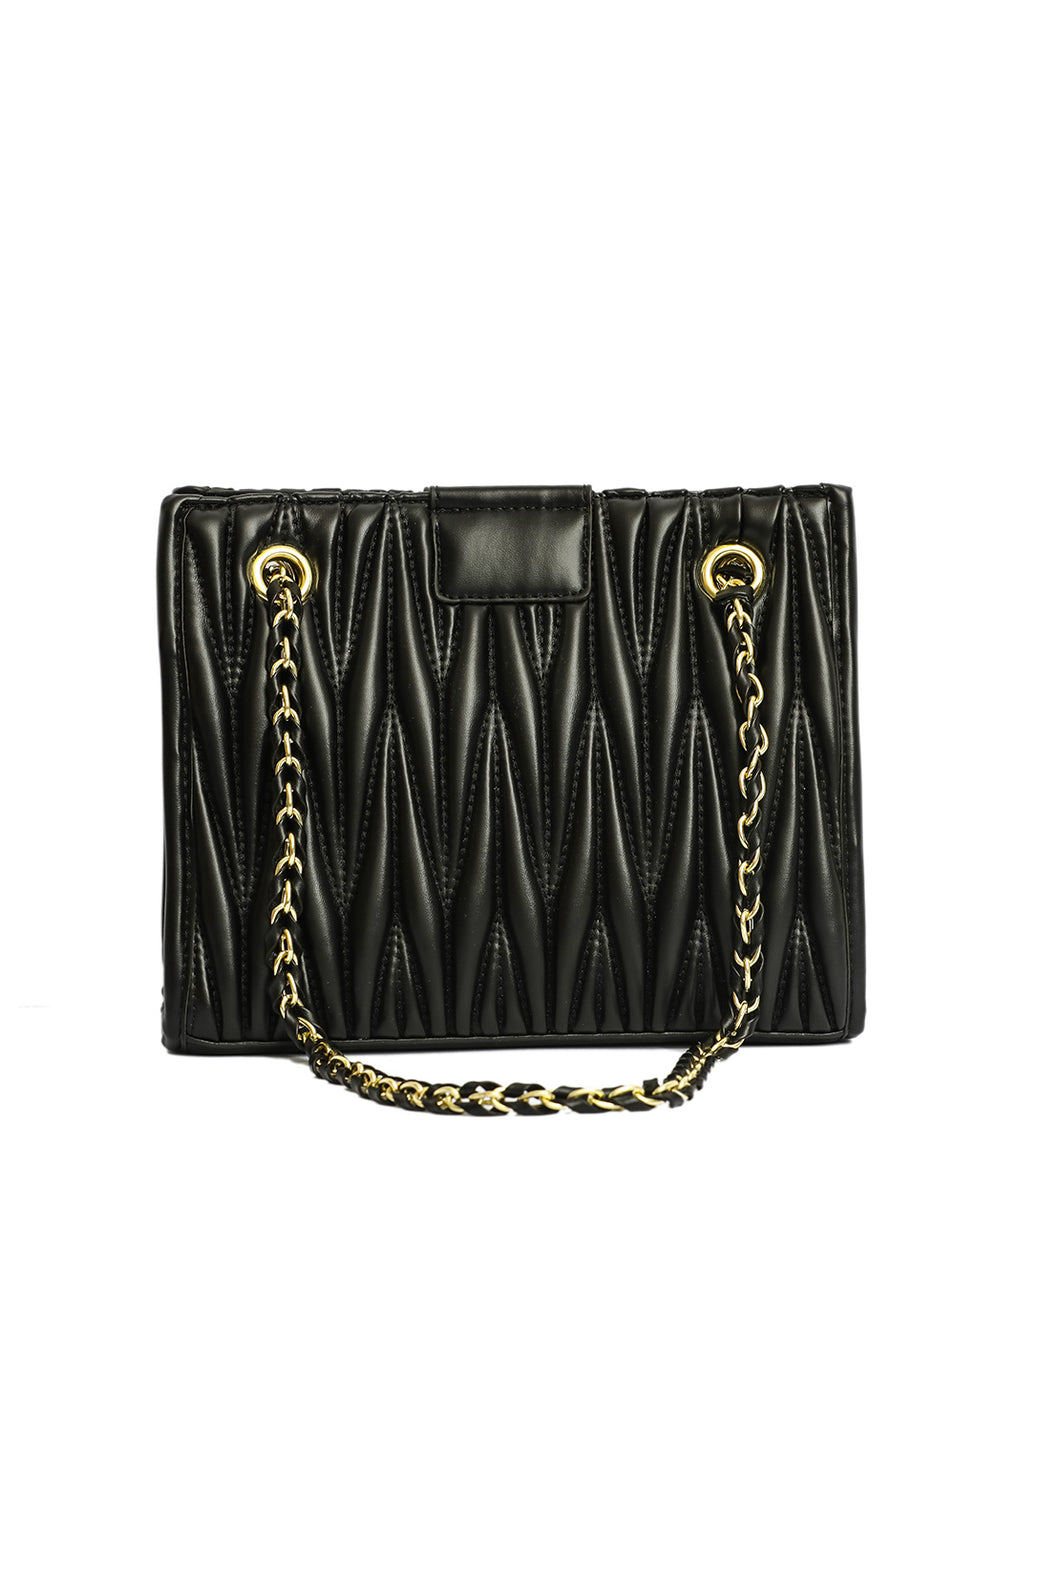 Double Chain Bag - Black